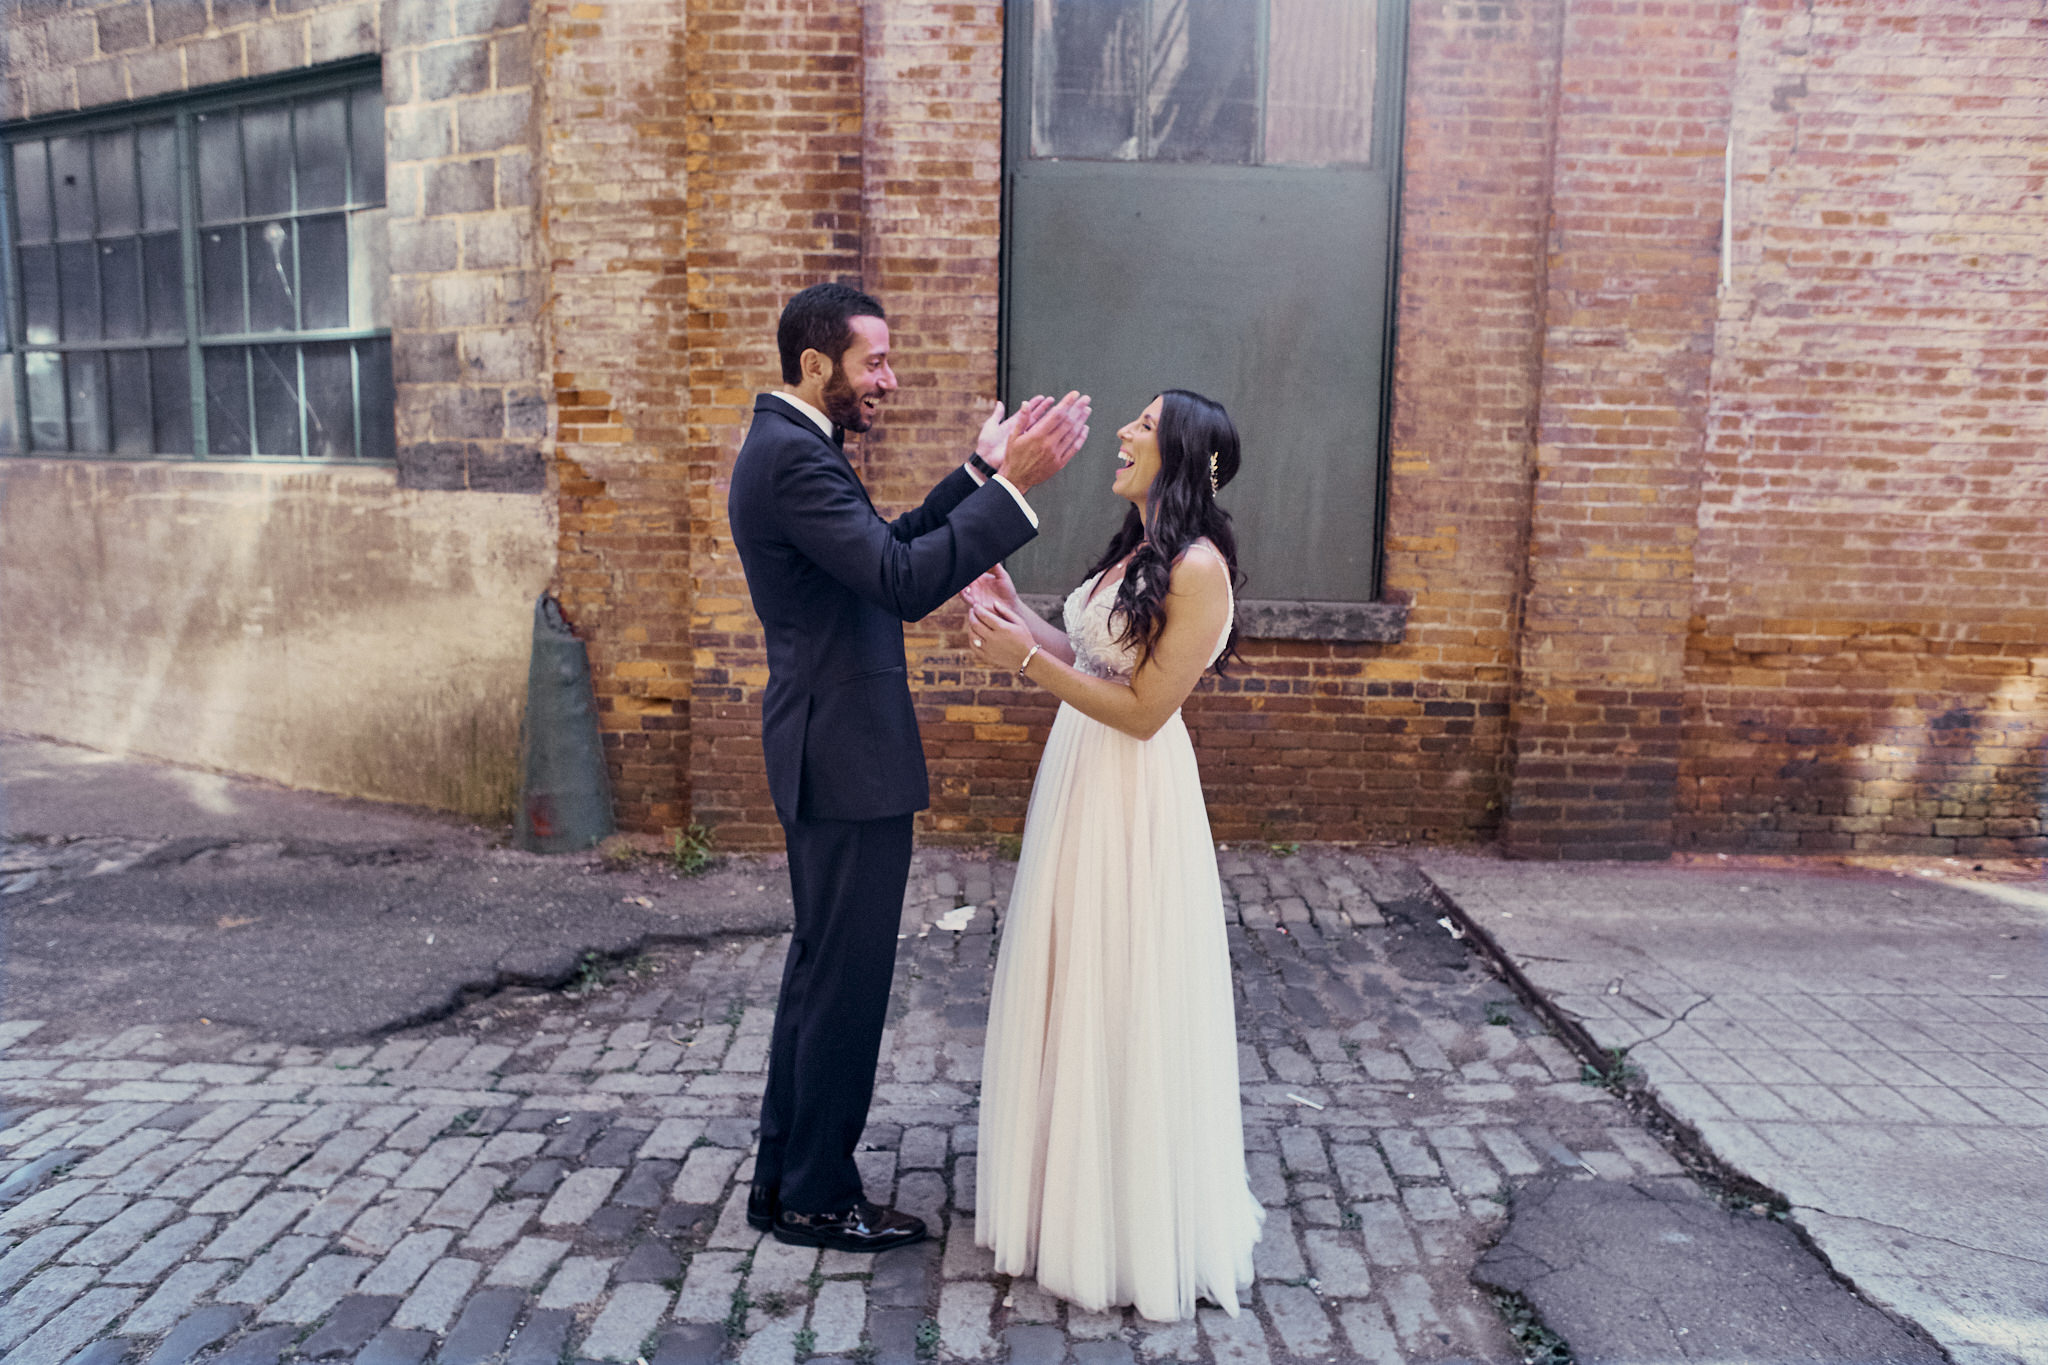 Art Factory Wedding Venue featuring Alyssa and Leo